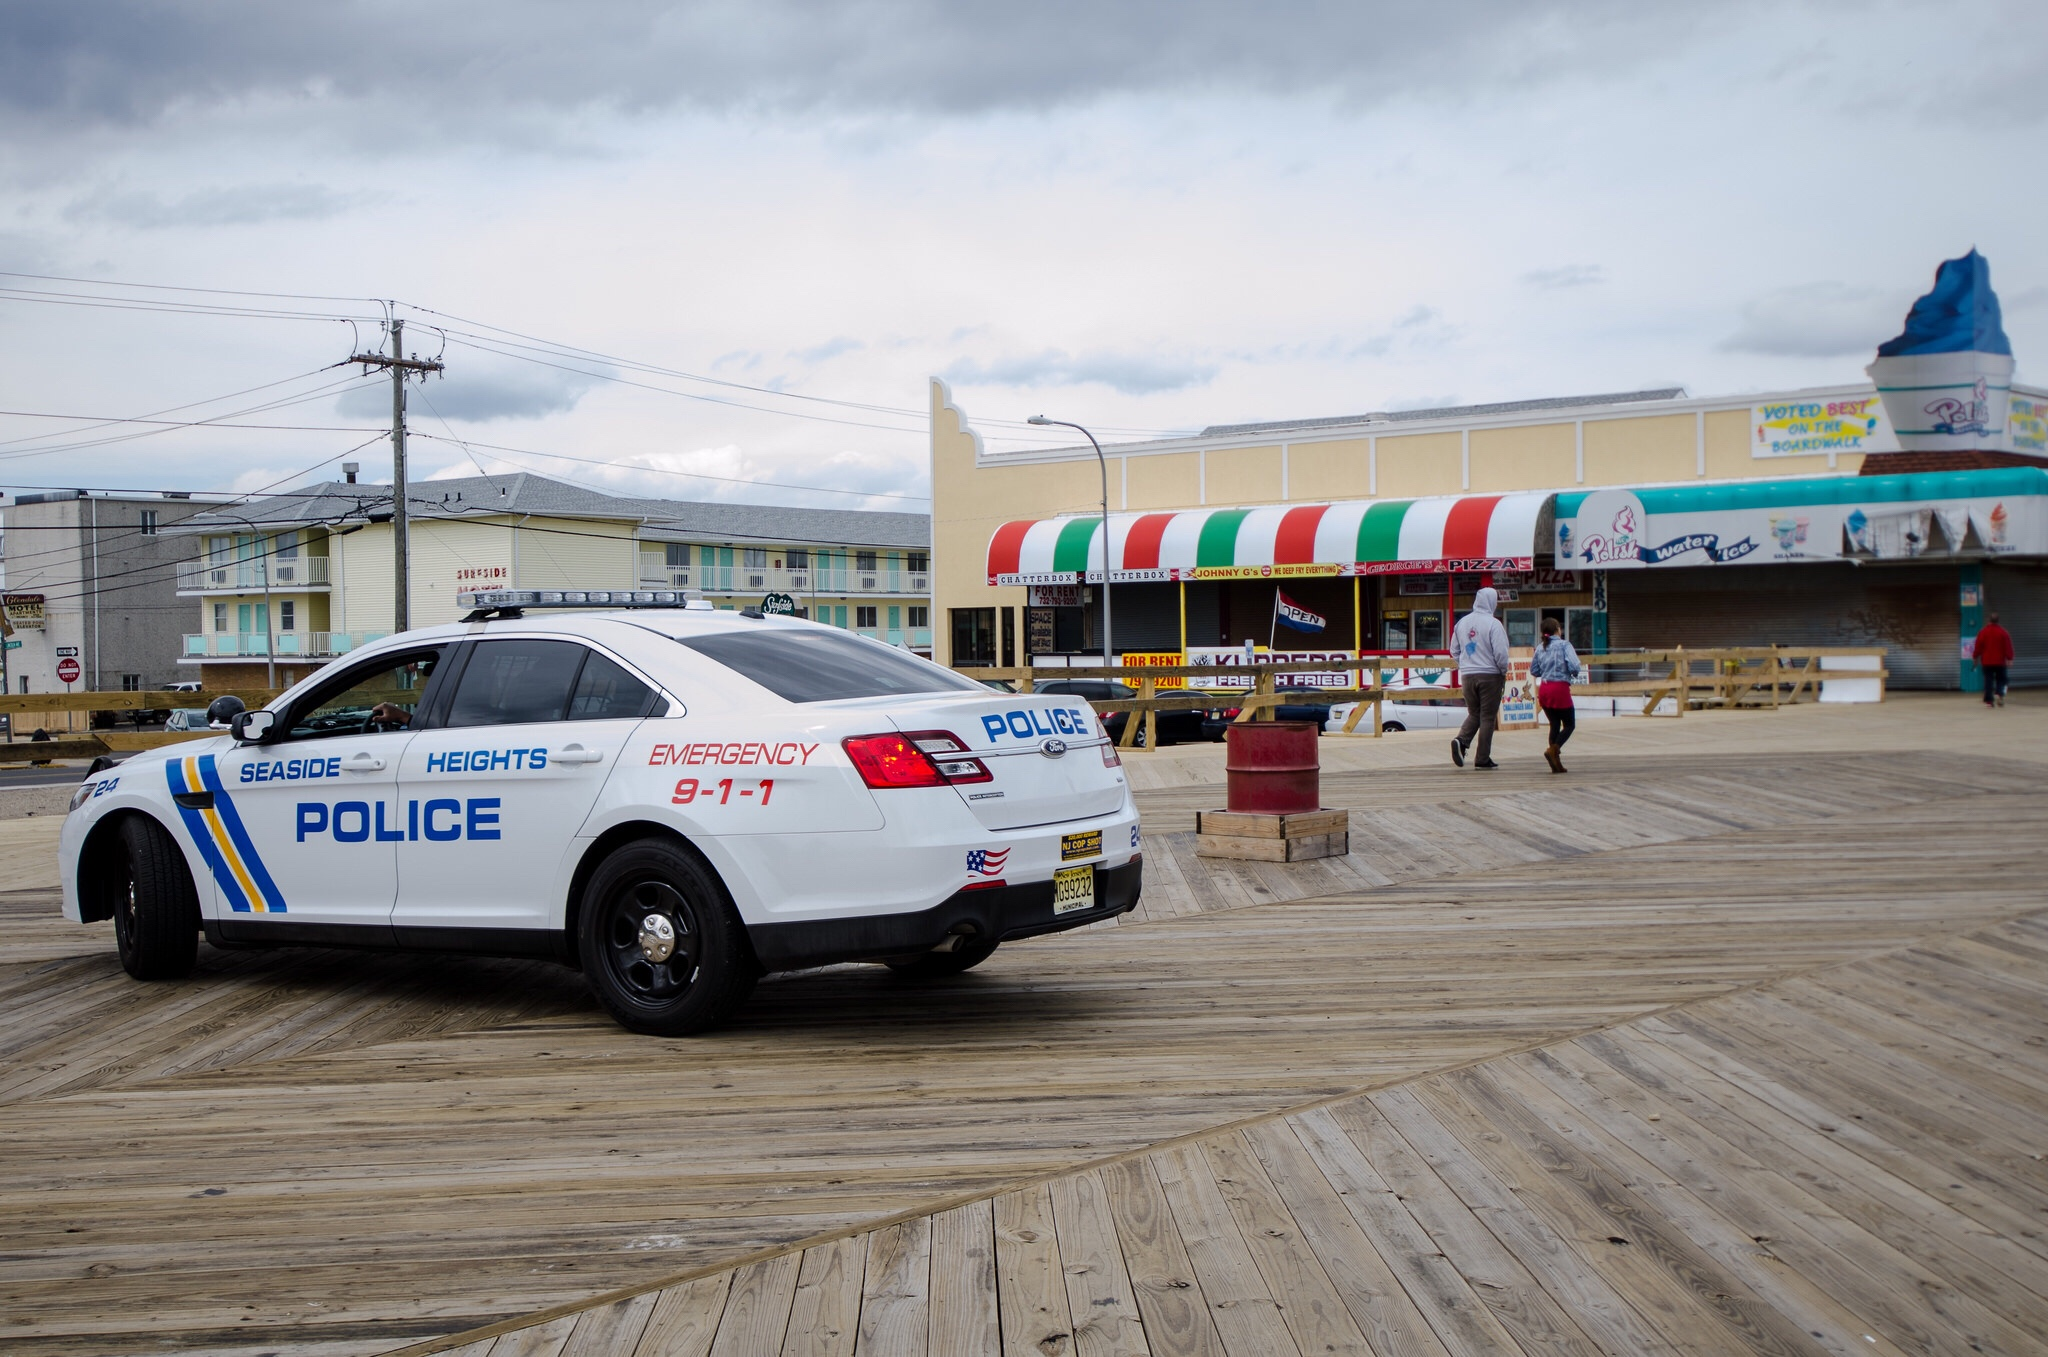 Seaside Heights: Intoxicated Female